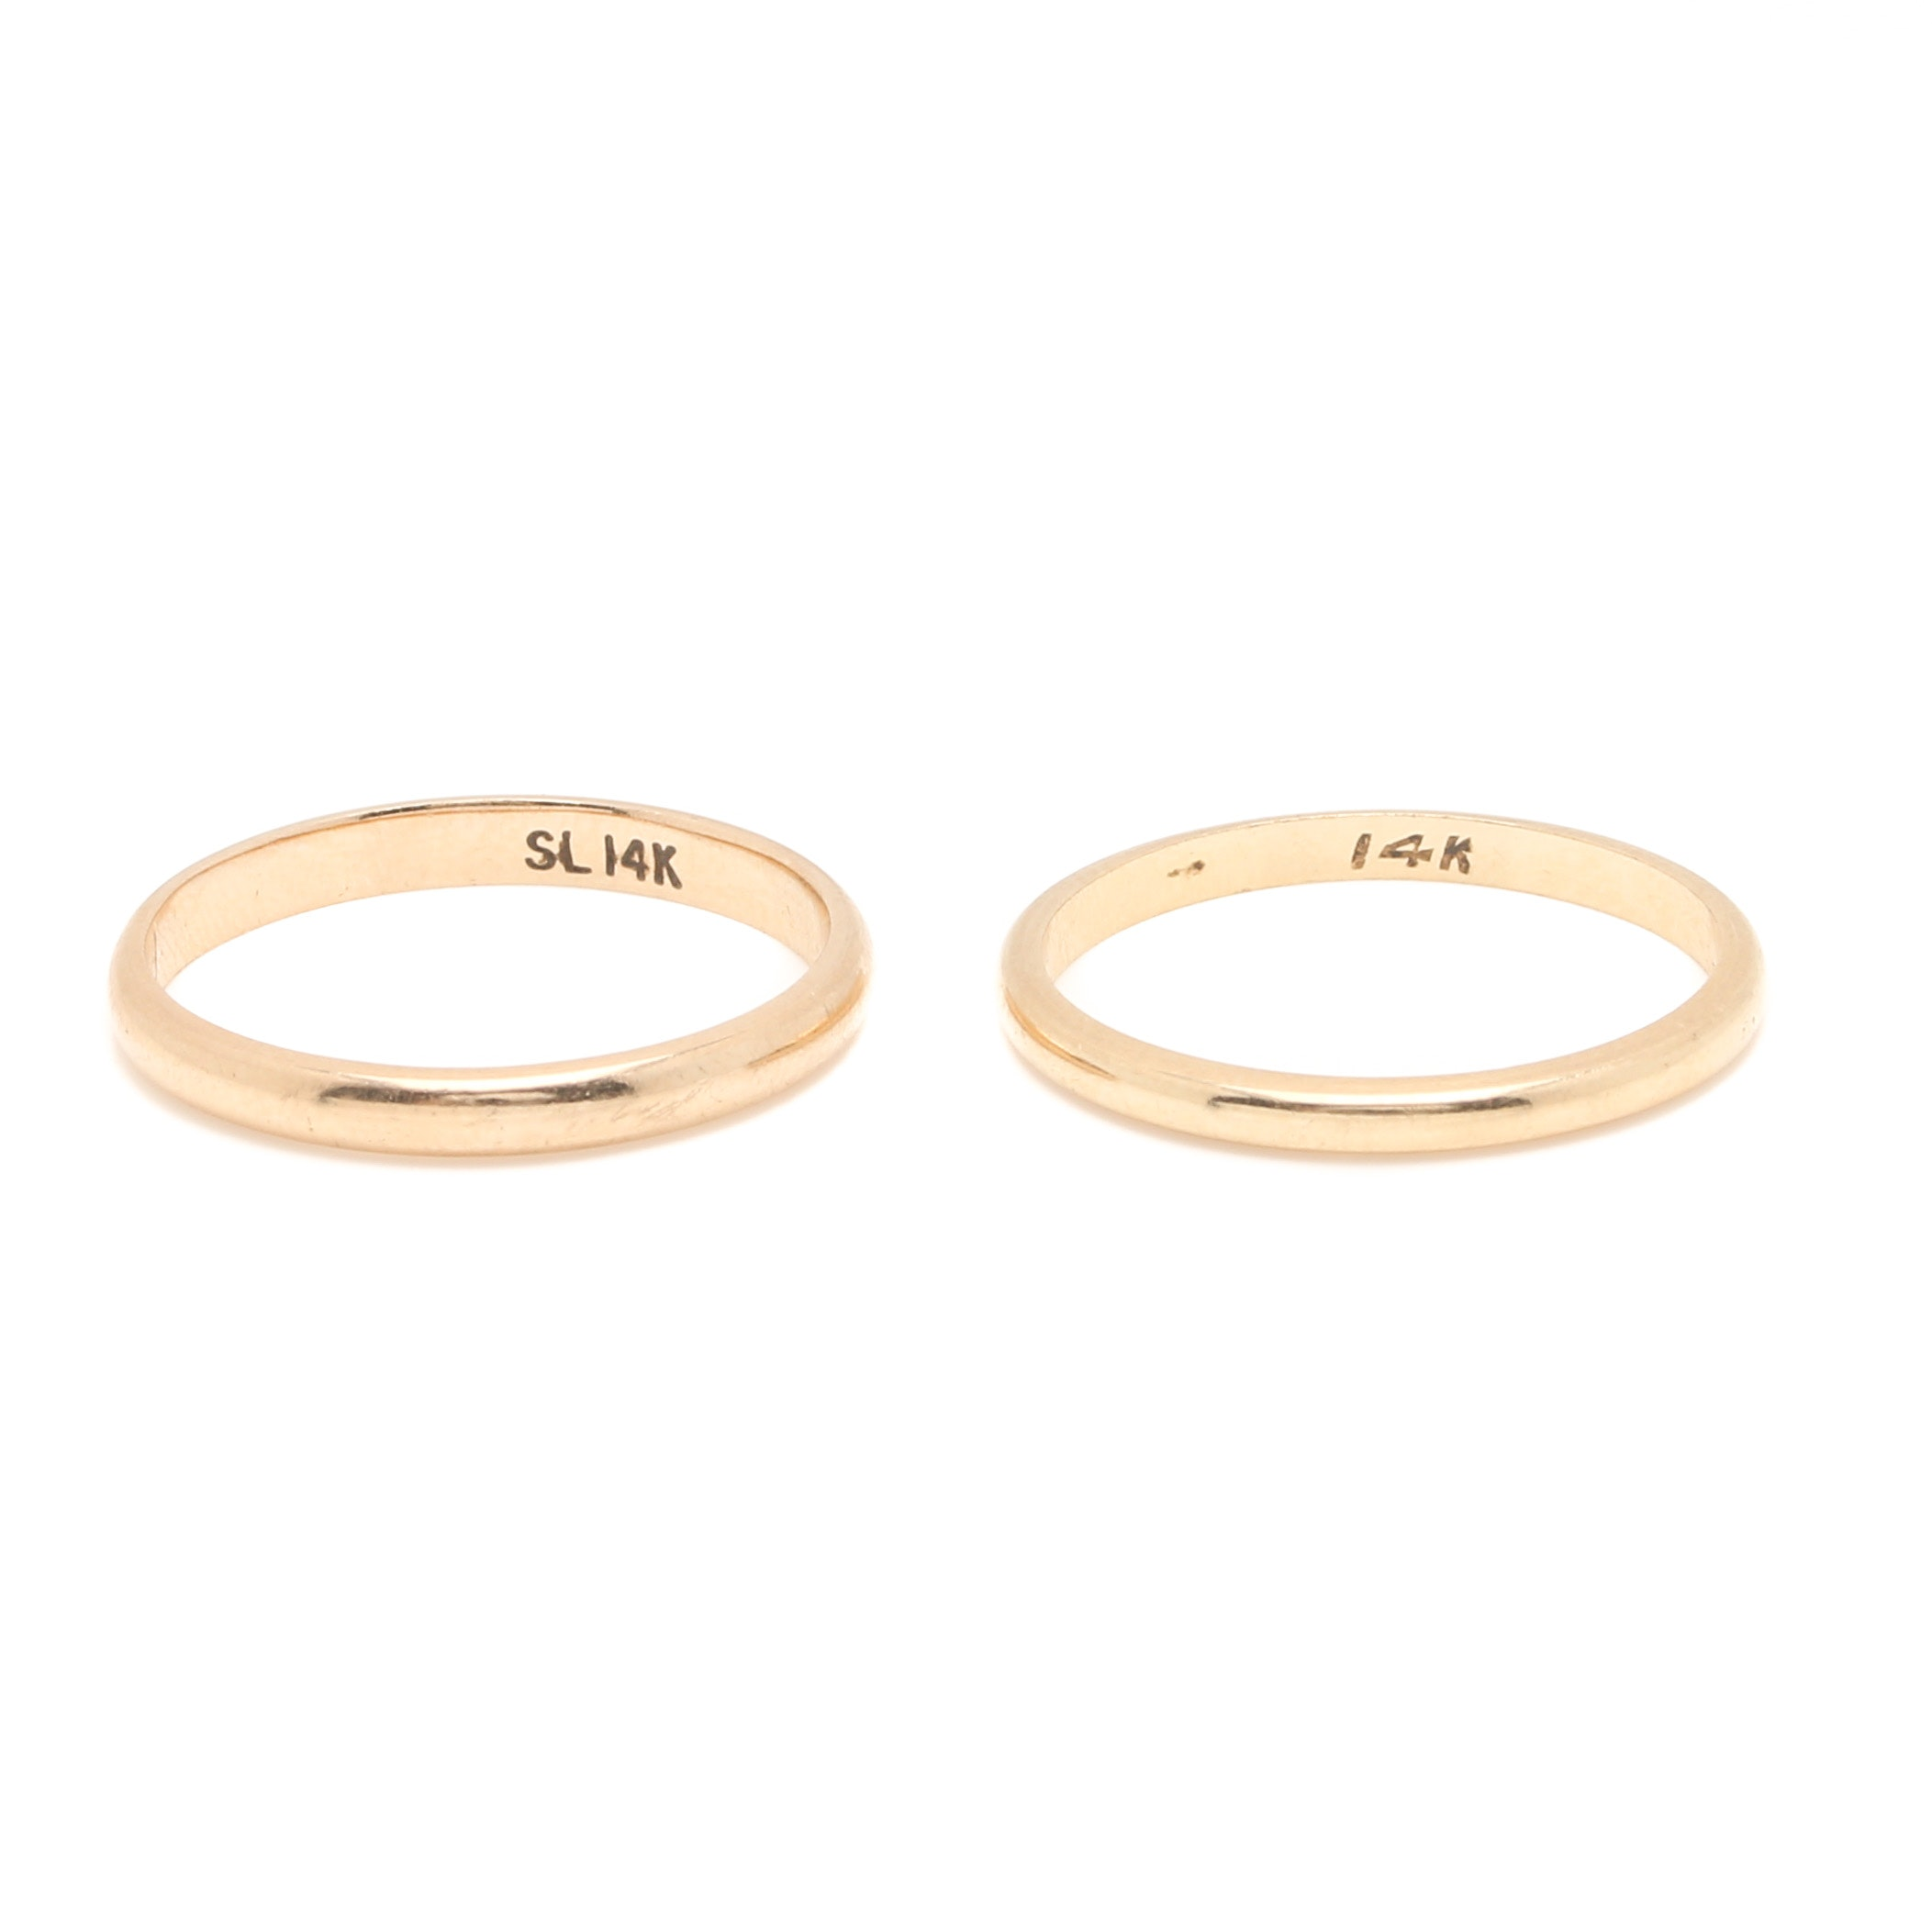 14K Yellow Gold Ring Bands